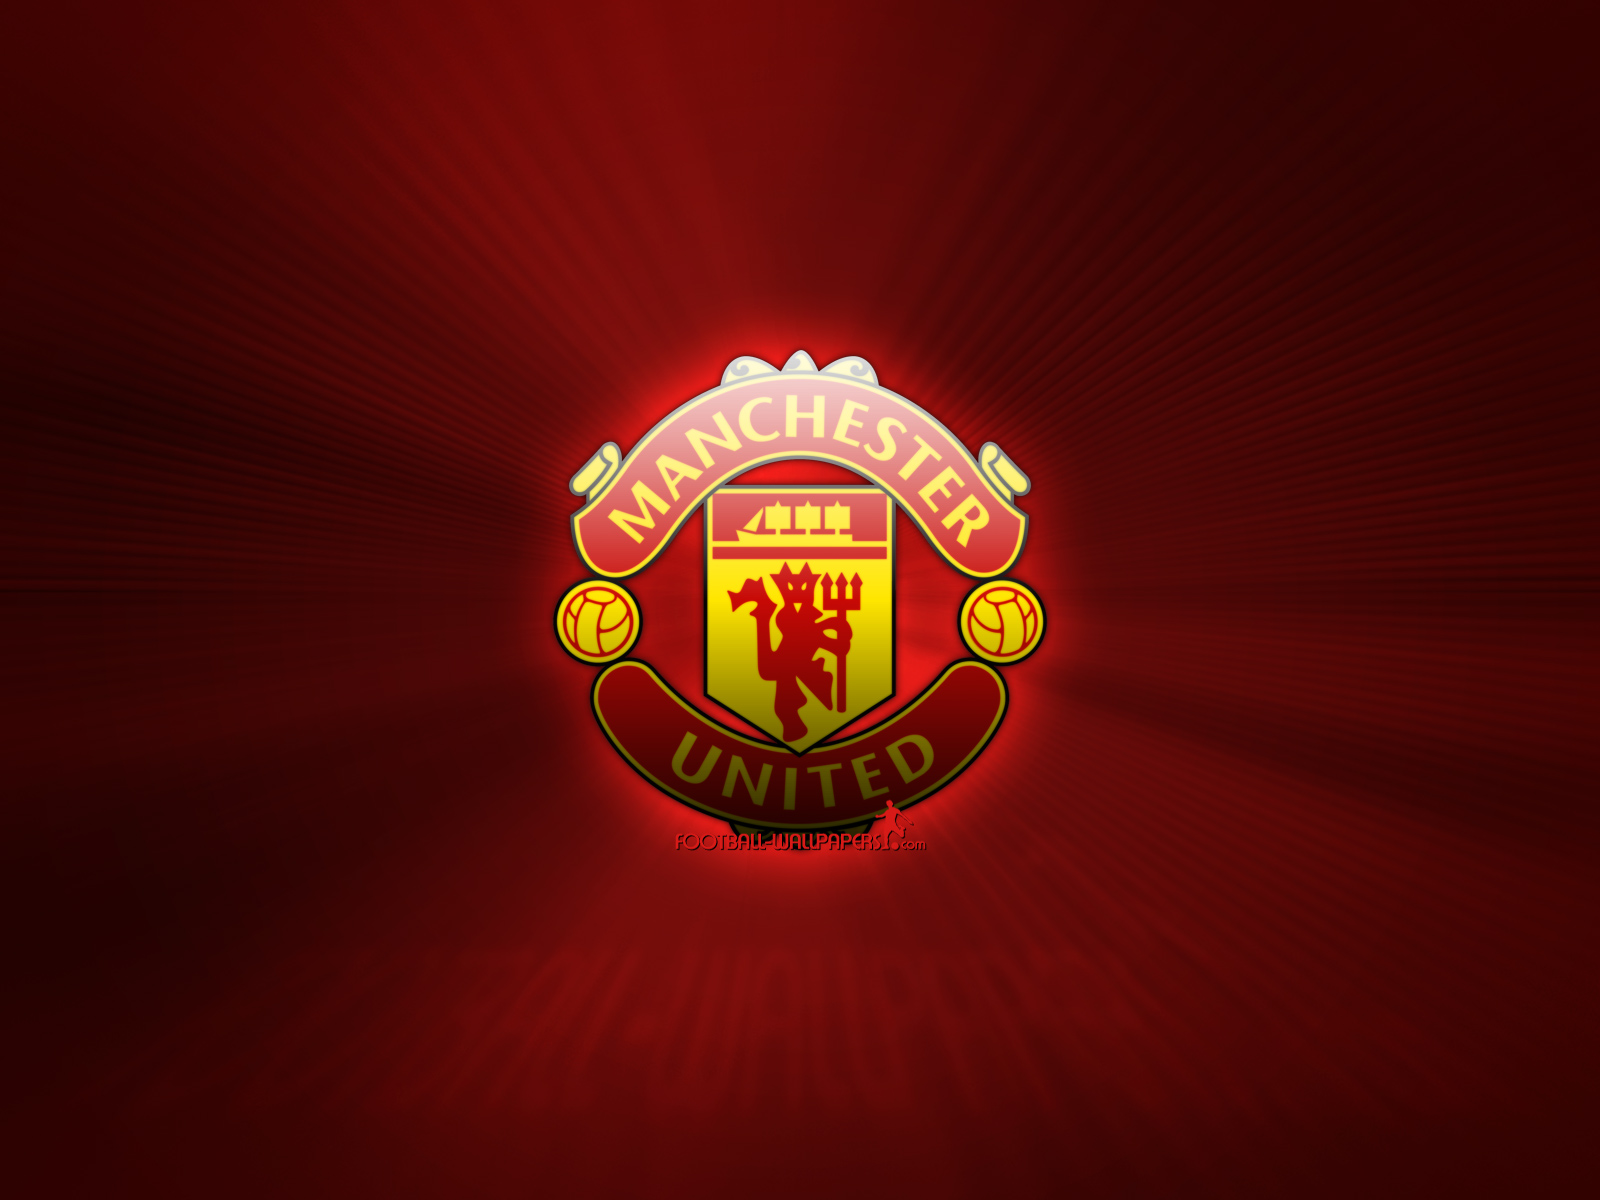 Manchester United Logo 88 Manchester United Wallpaper 1600x1200